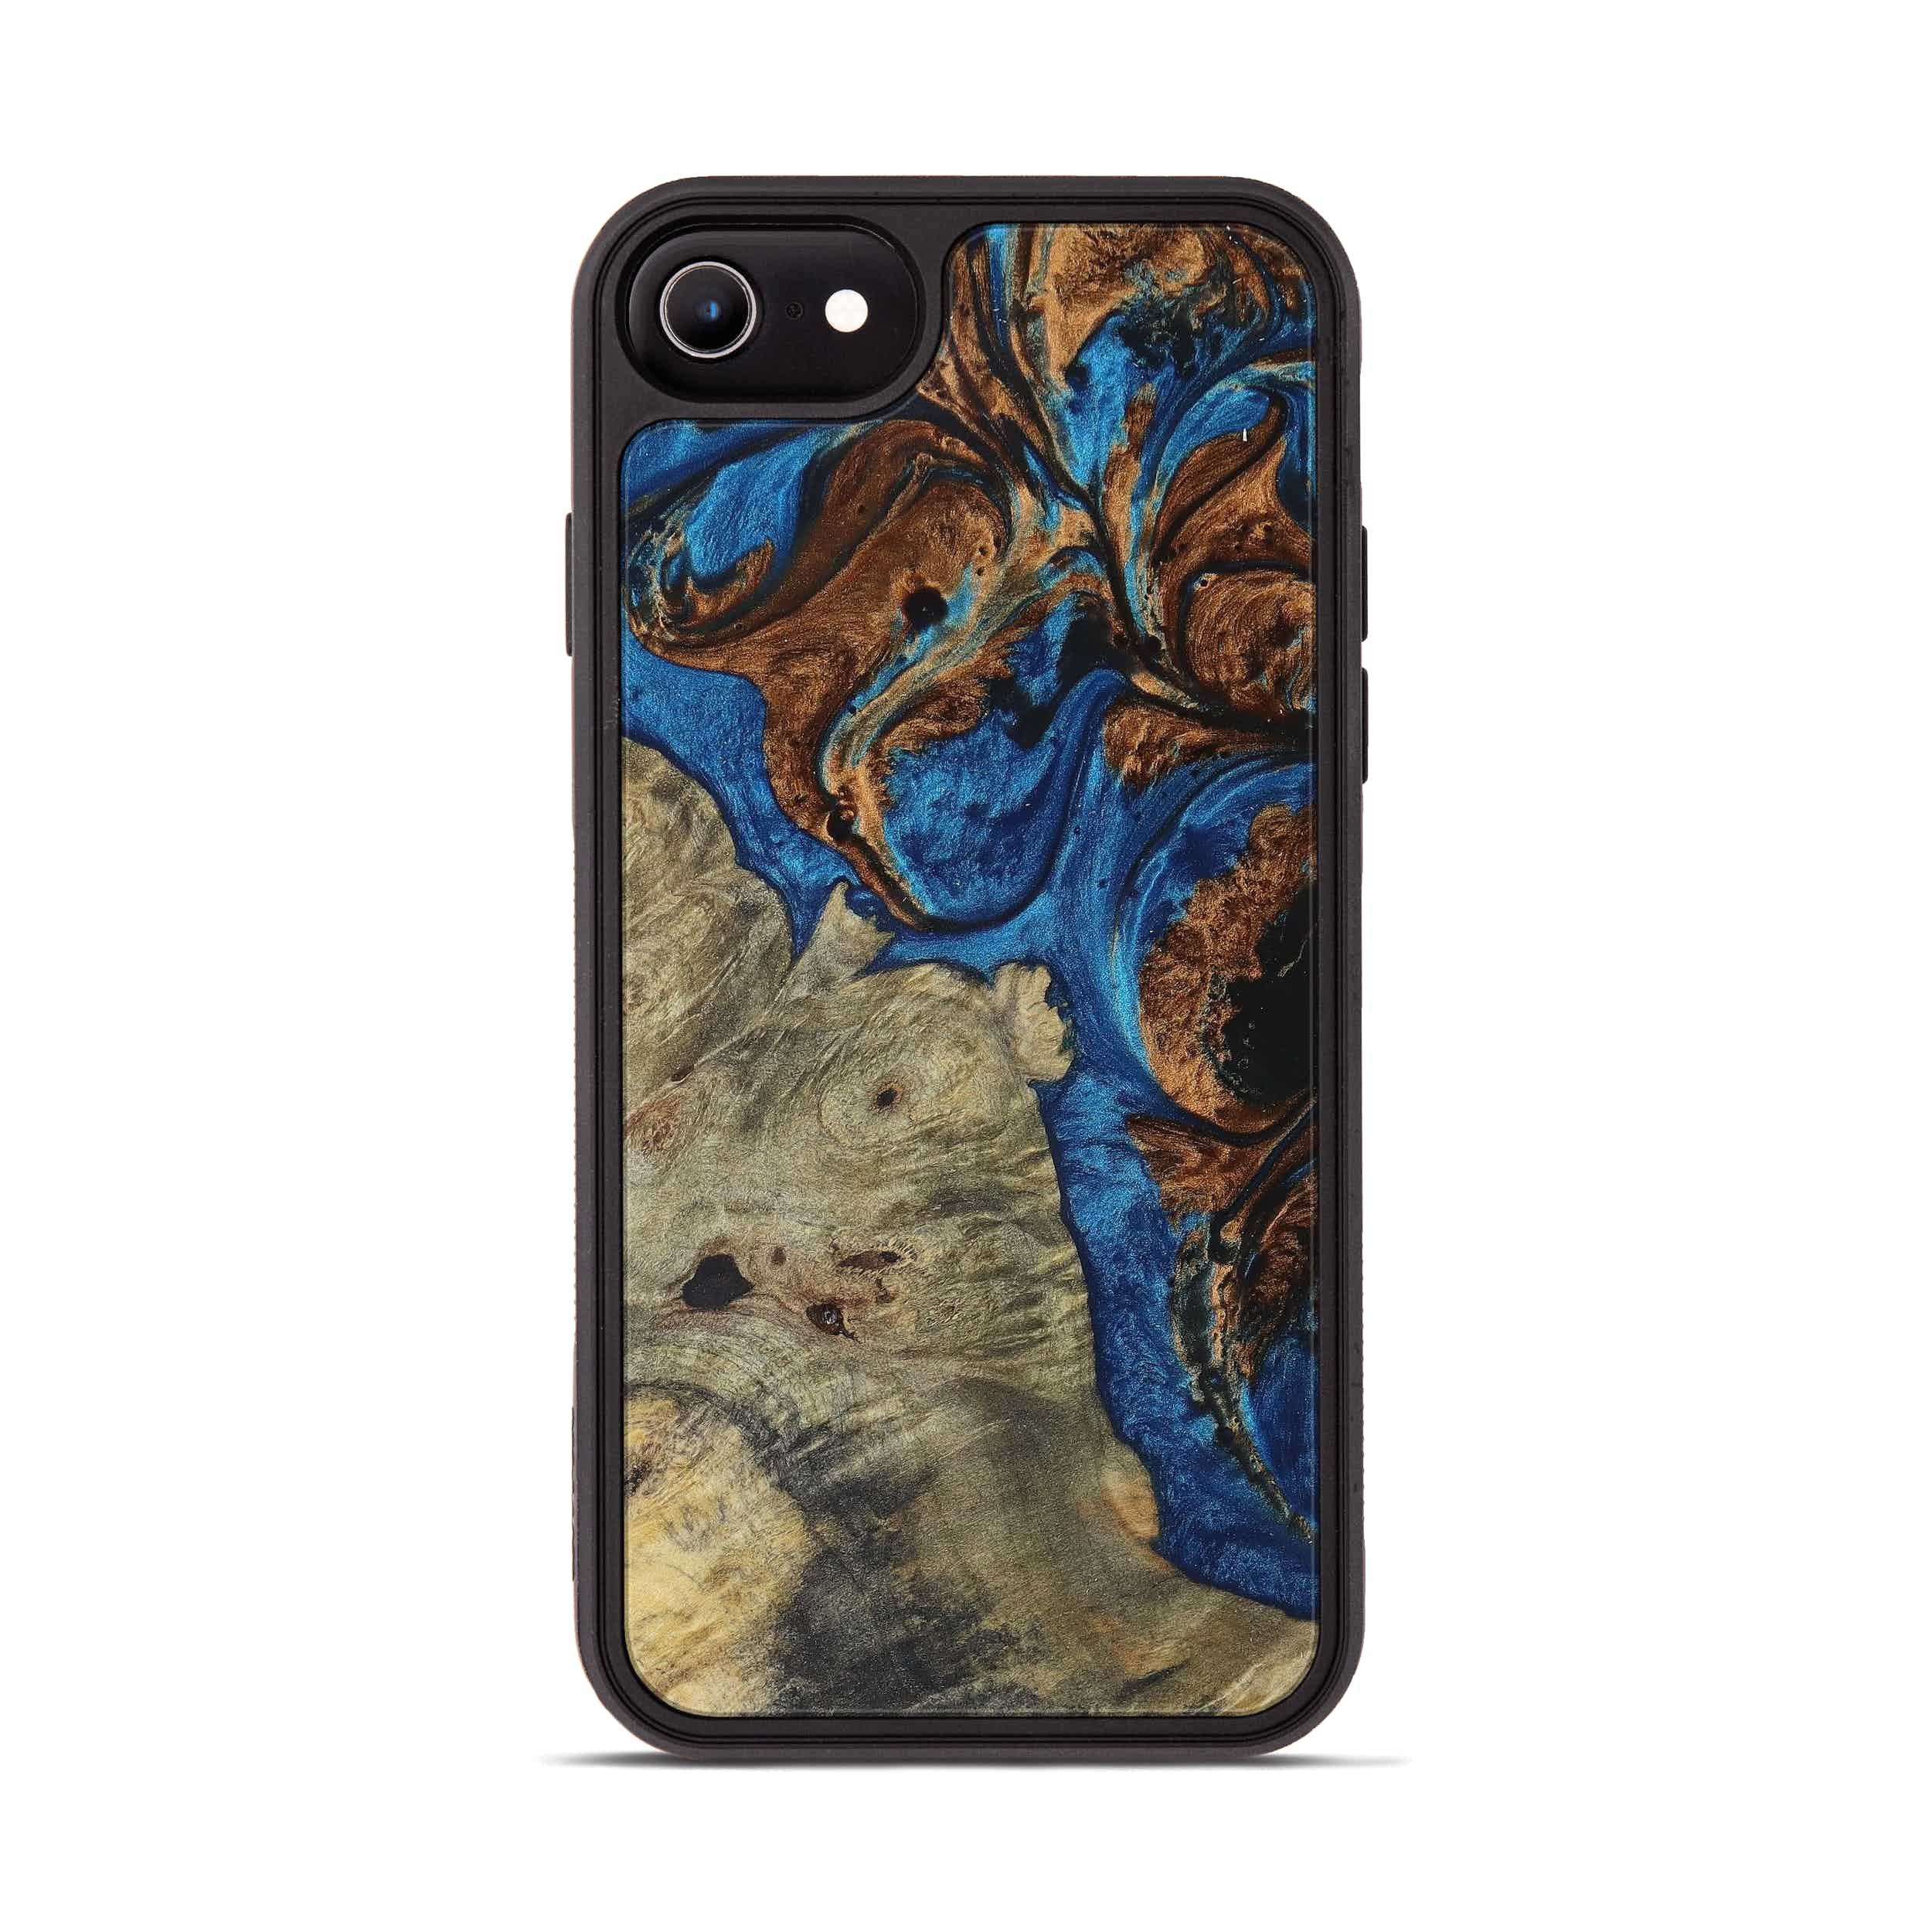 iPhone 8 Wood+Resin Phone Case - Pam (Teal & Gold, 394565)